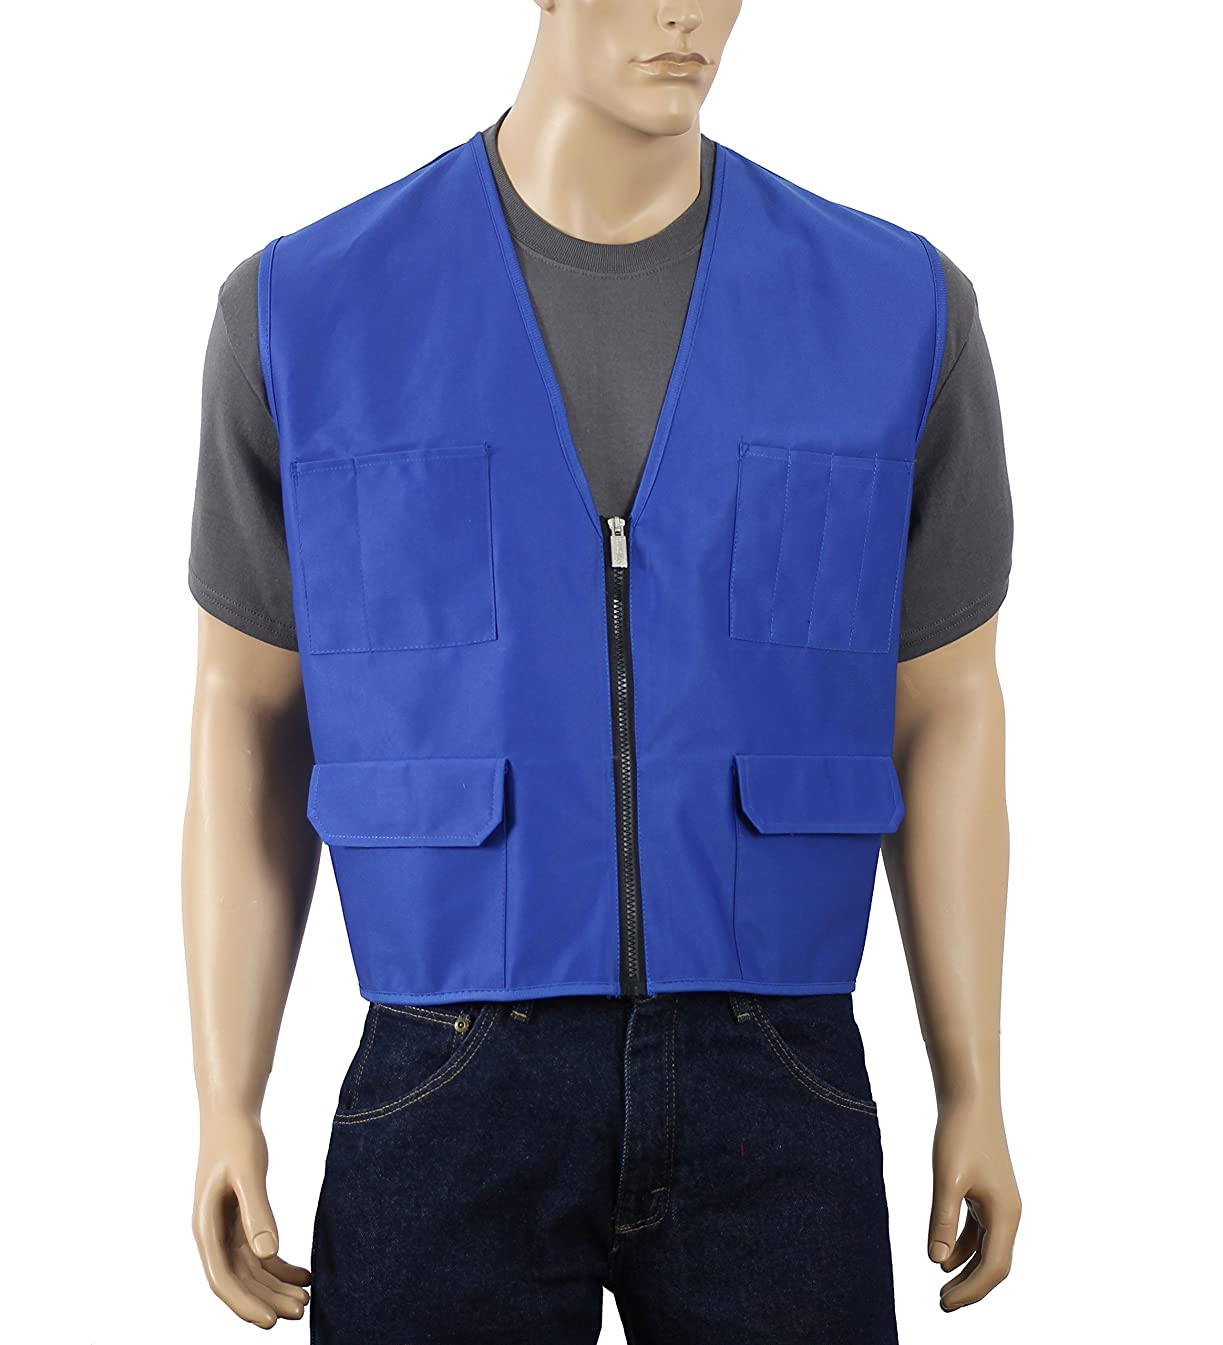 Safety Depot Multiple Colors Safety Vest with Pockets No Stripe Reflective Tape Simple Economy 8038B (Royal Blue, Medium)